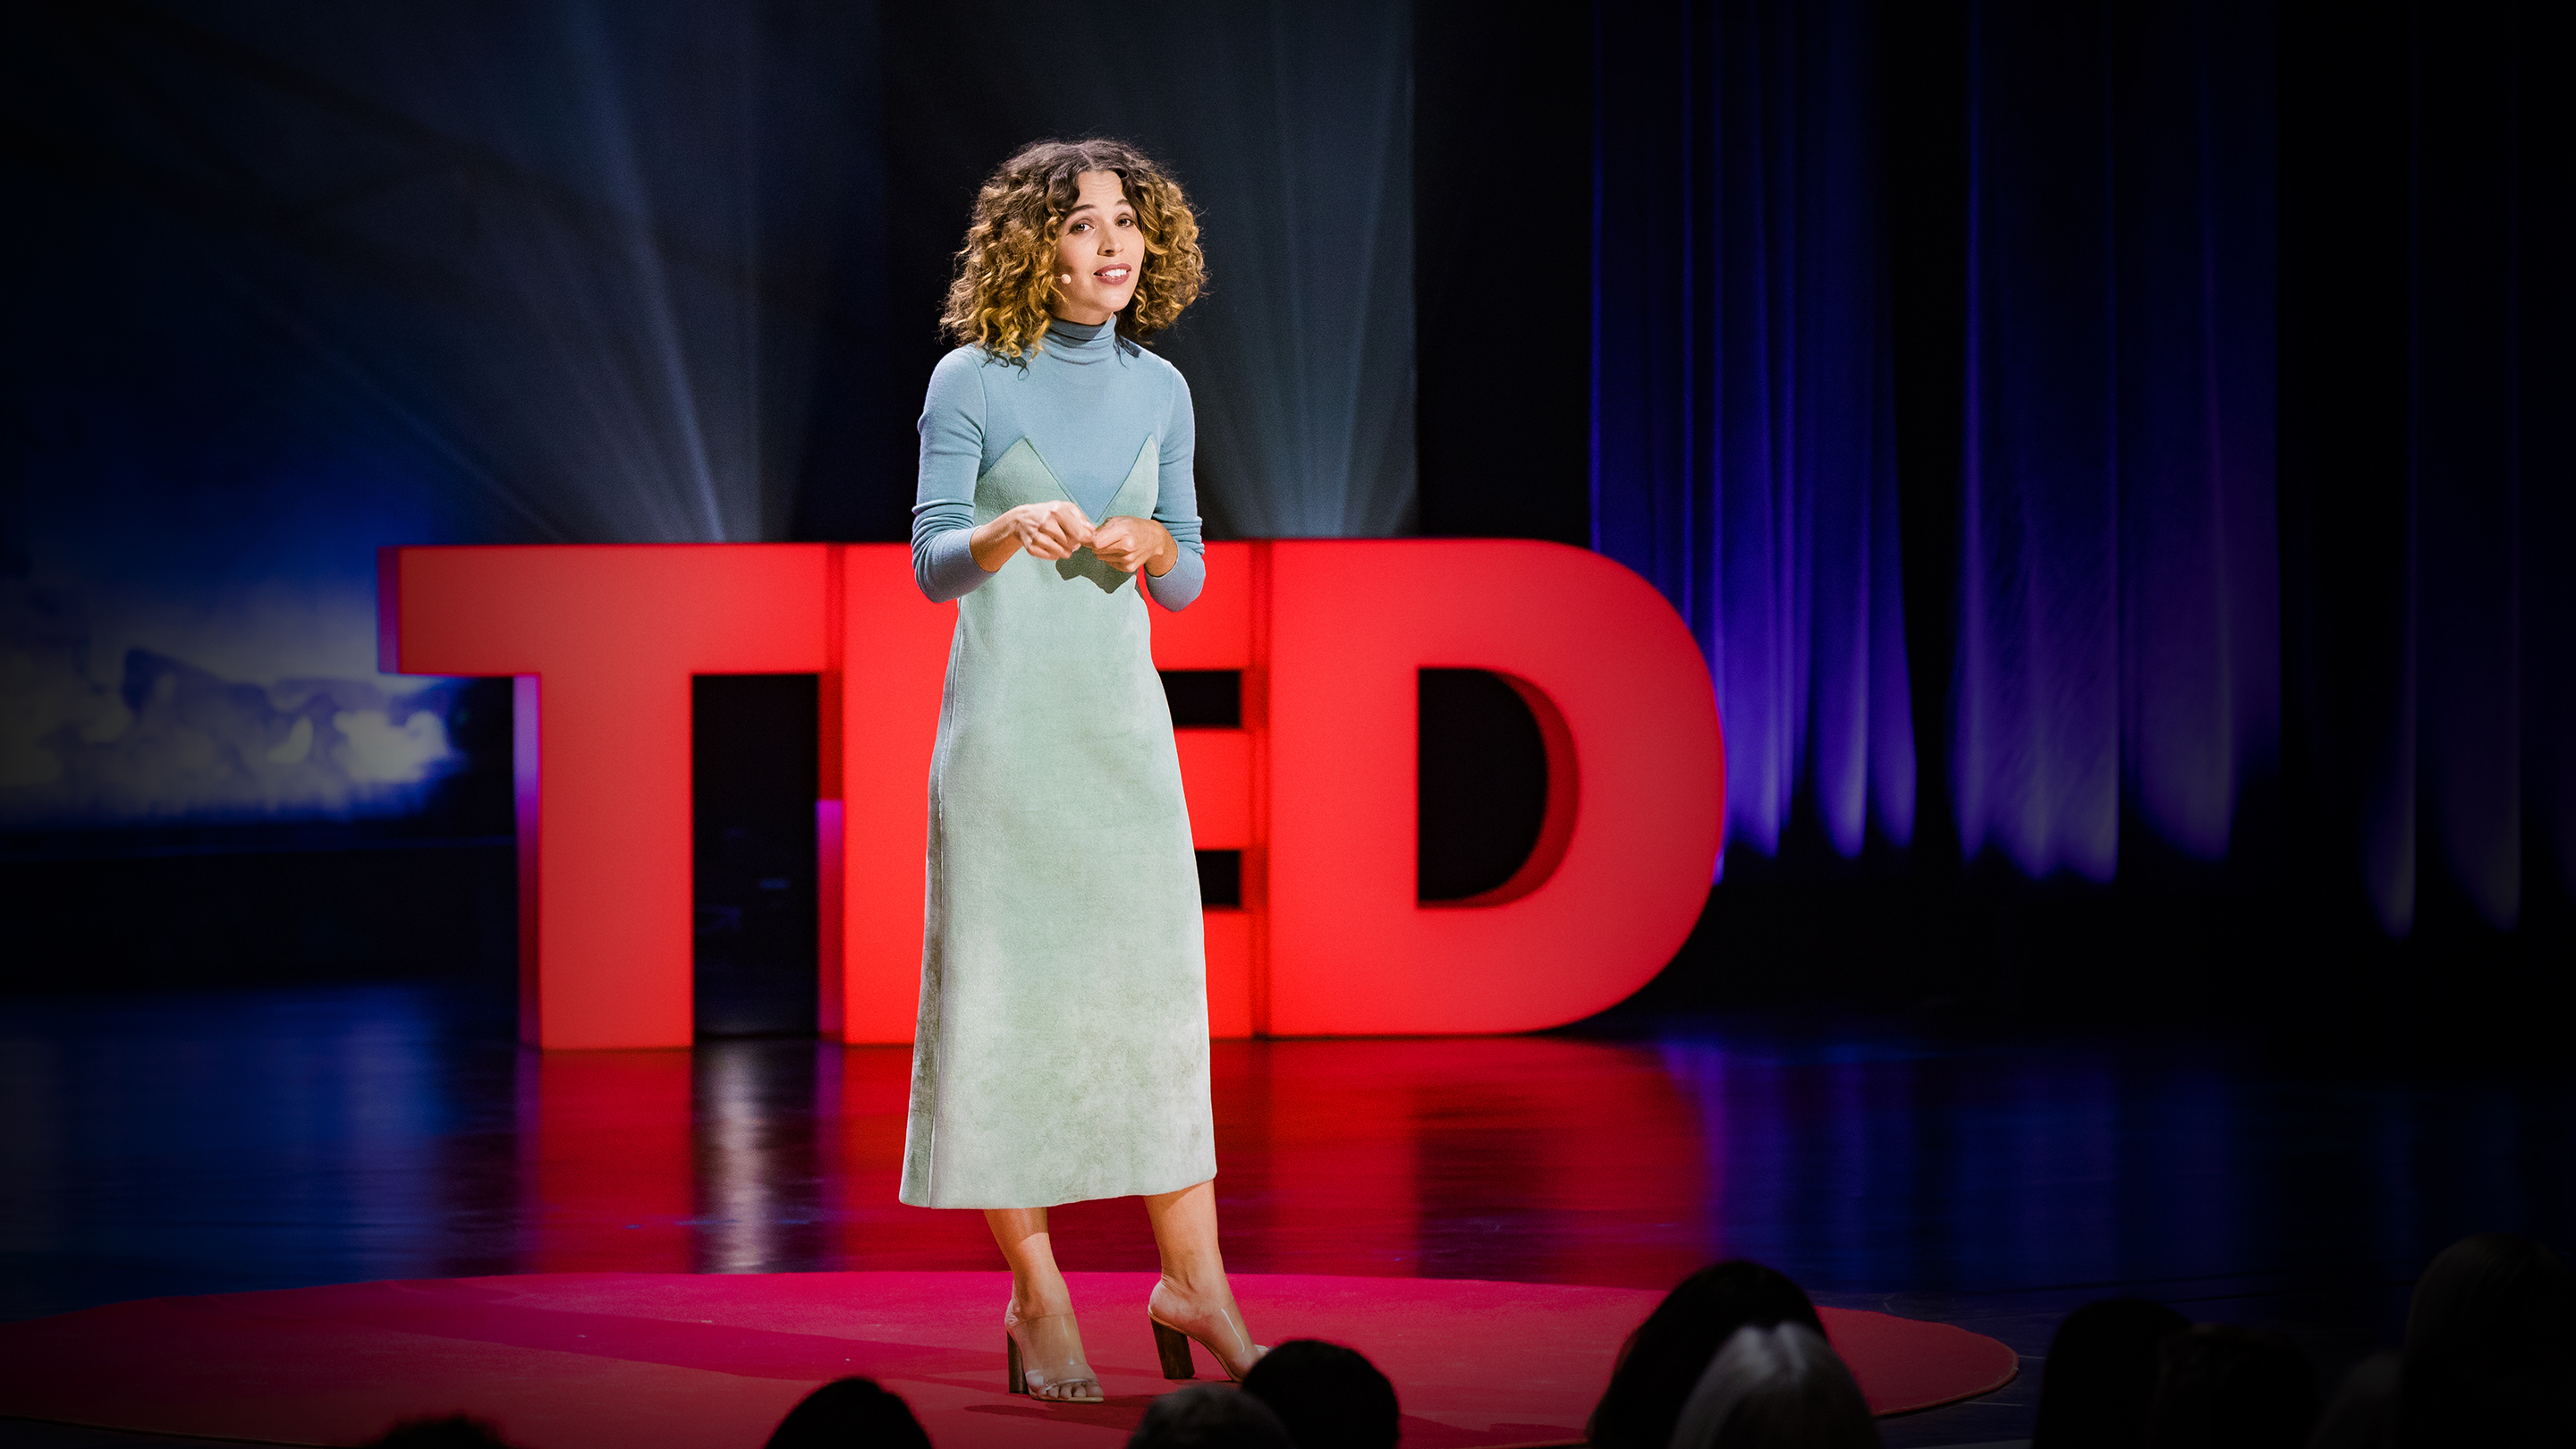 Cleo wade want to change the world start by being brave enough to cleo wade want to change the world start by being brave enough to care ted talk voltagebd Choice Image